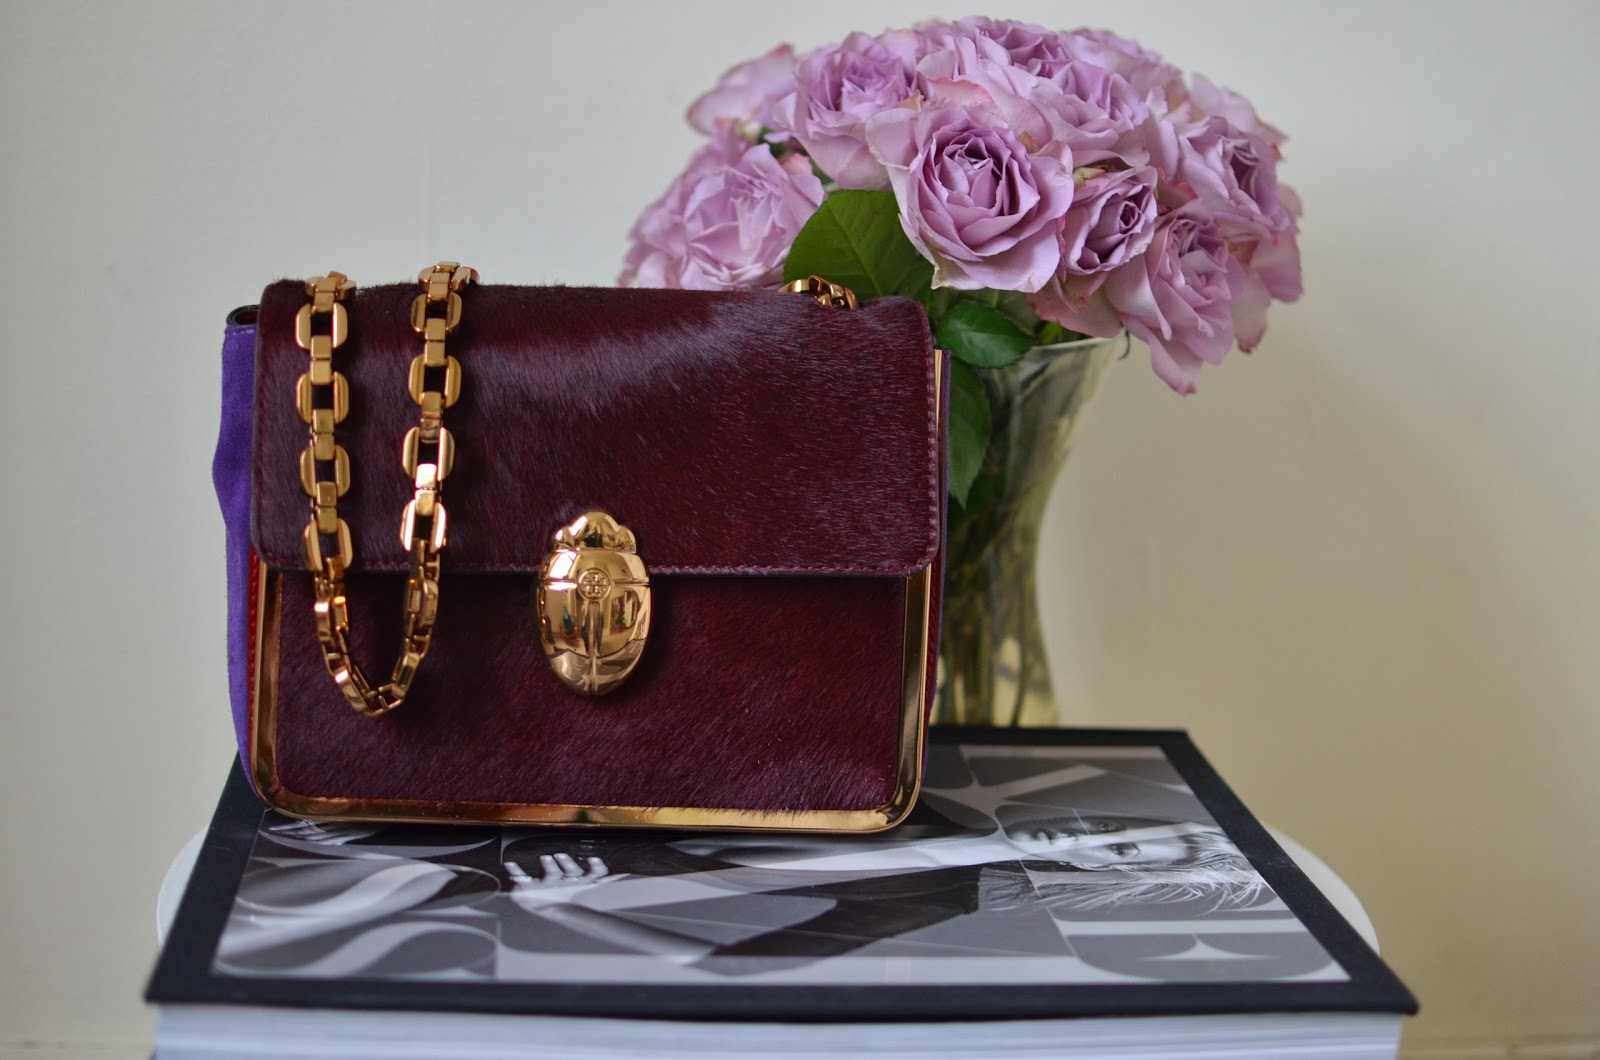 fashion-bridge, fashion-bridge blog, fashion-bridge.blogspot.com, designers bags, Tory Burch, Tory Burch bags, burgundy bags